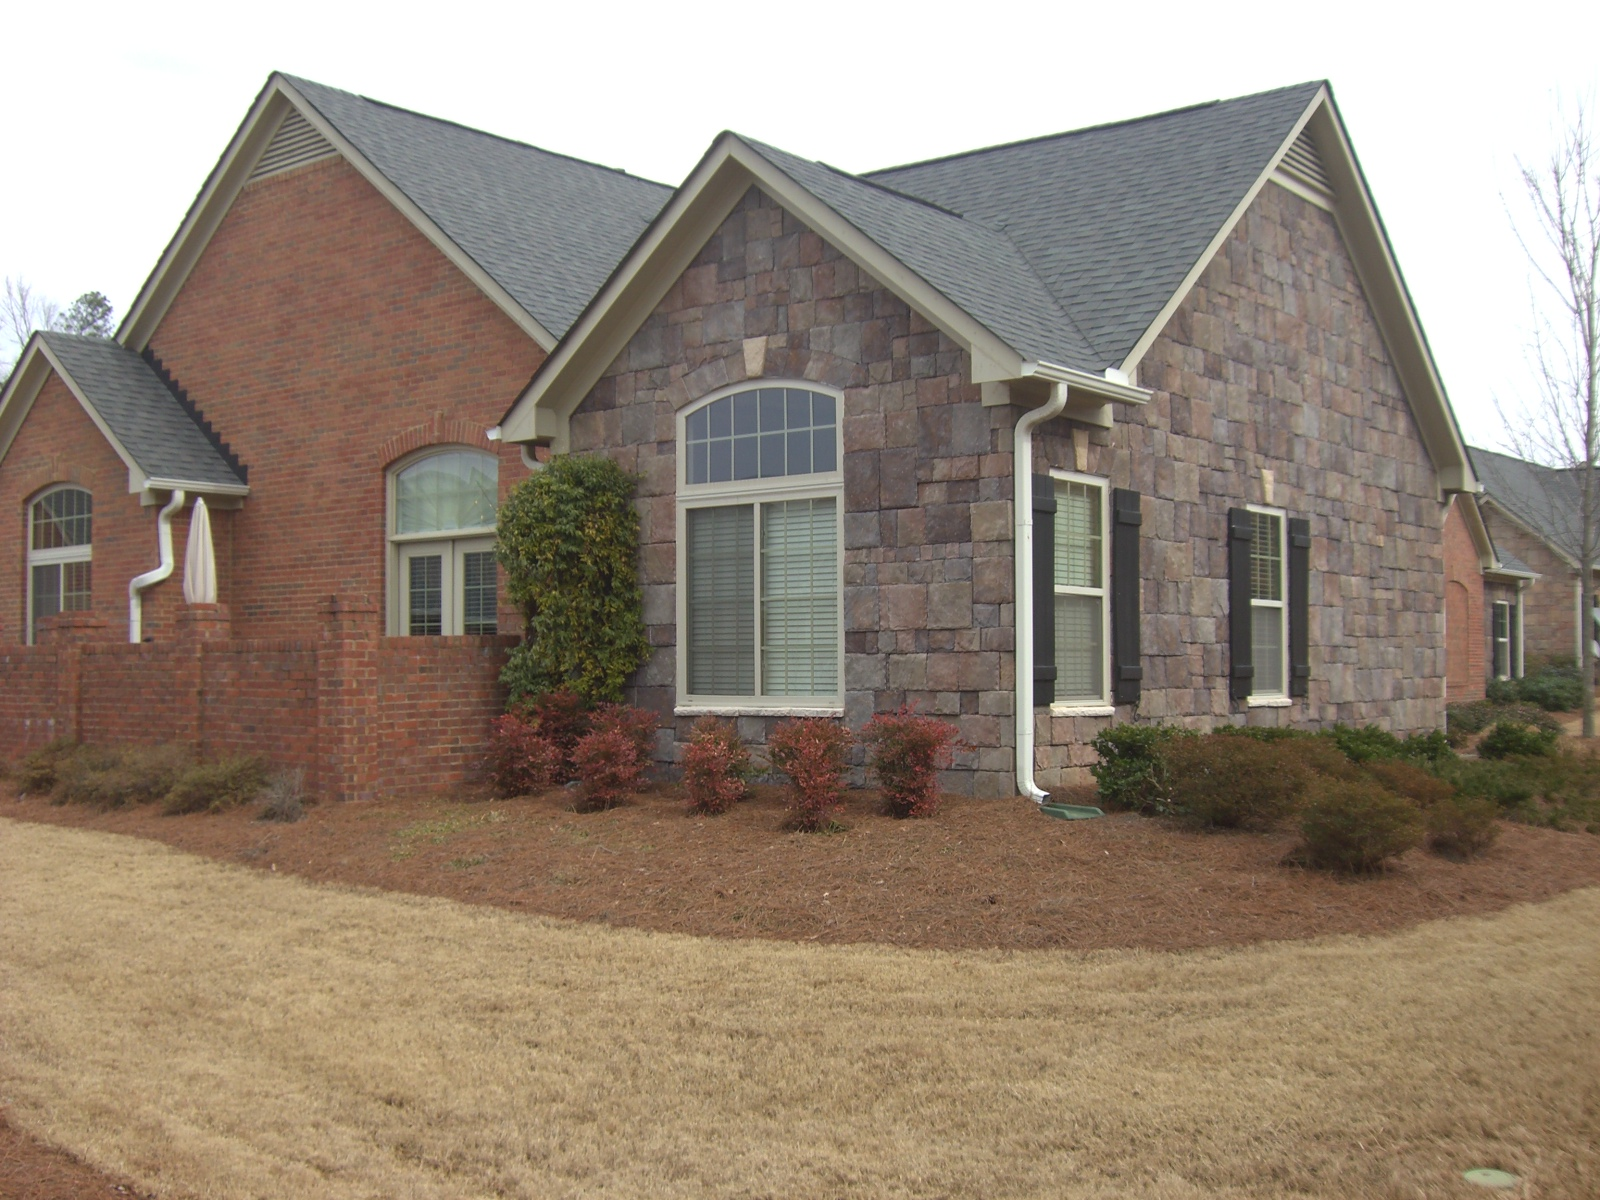 1200 #836B48 Ranch Villa Condo. One Owner And Well Cared For! Covered Entry  pic Peachtree Exterior Doors 46511600